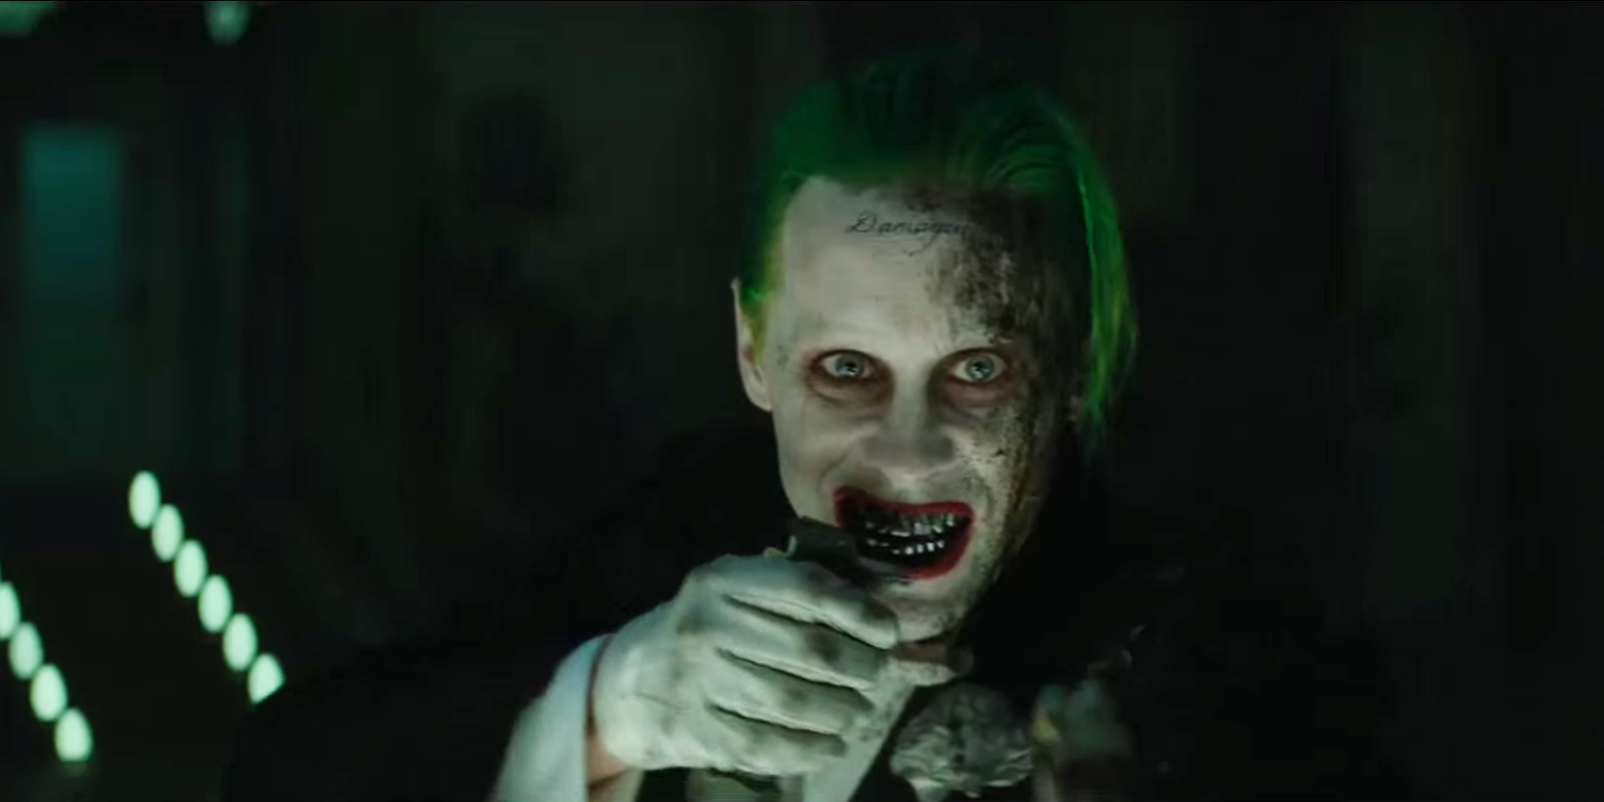 Suicide Squad Jared Leto as The Joker